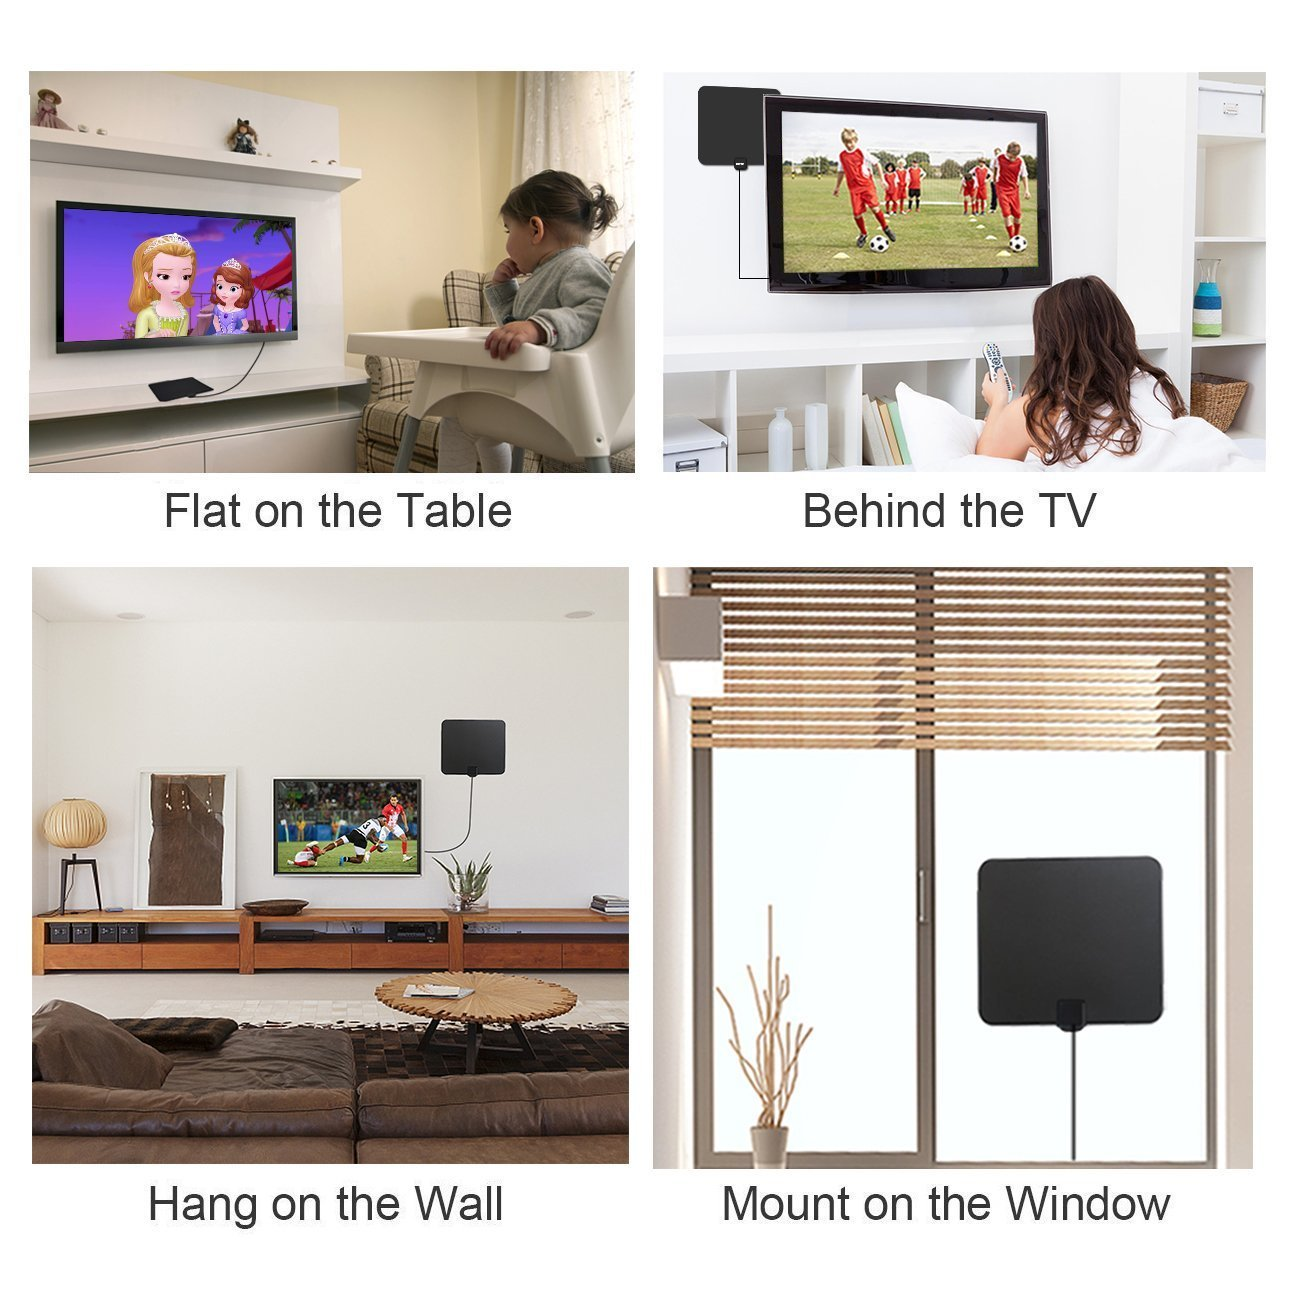 TV Aerial HDTV Antenna, 50 Miles Range Indoor Ultra-Thin Amplified Window Aerial for Digital Freeview and Analog TV Signals+Built-in Amplifier Silver Paddle+Detachable Amplifier Digital Signal Booster